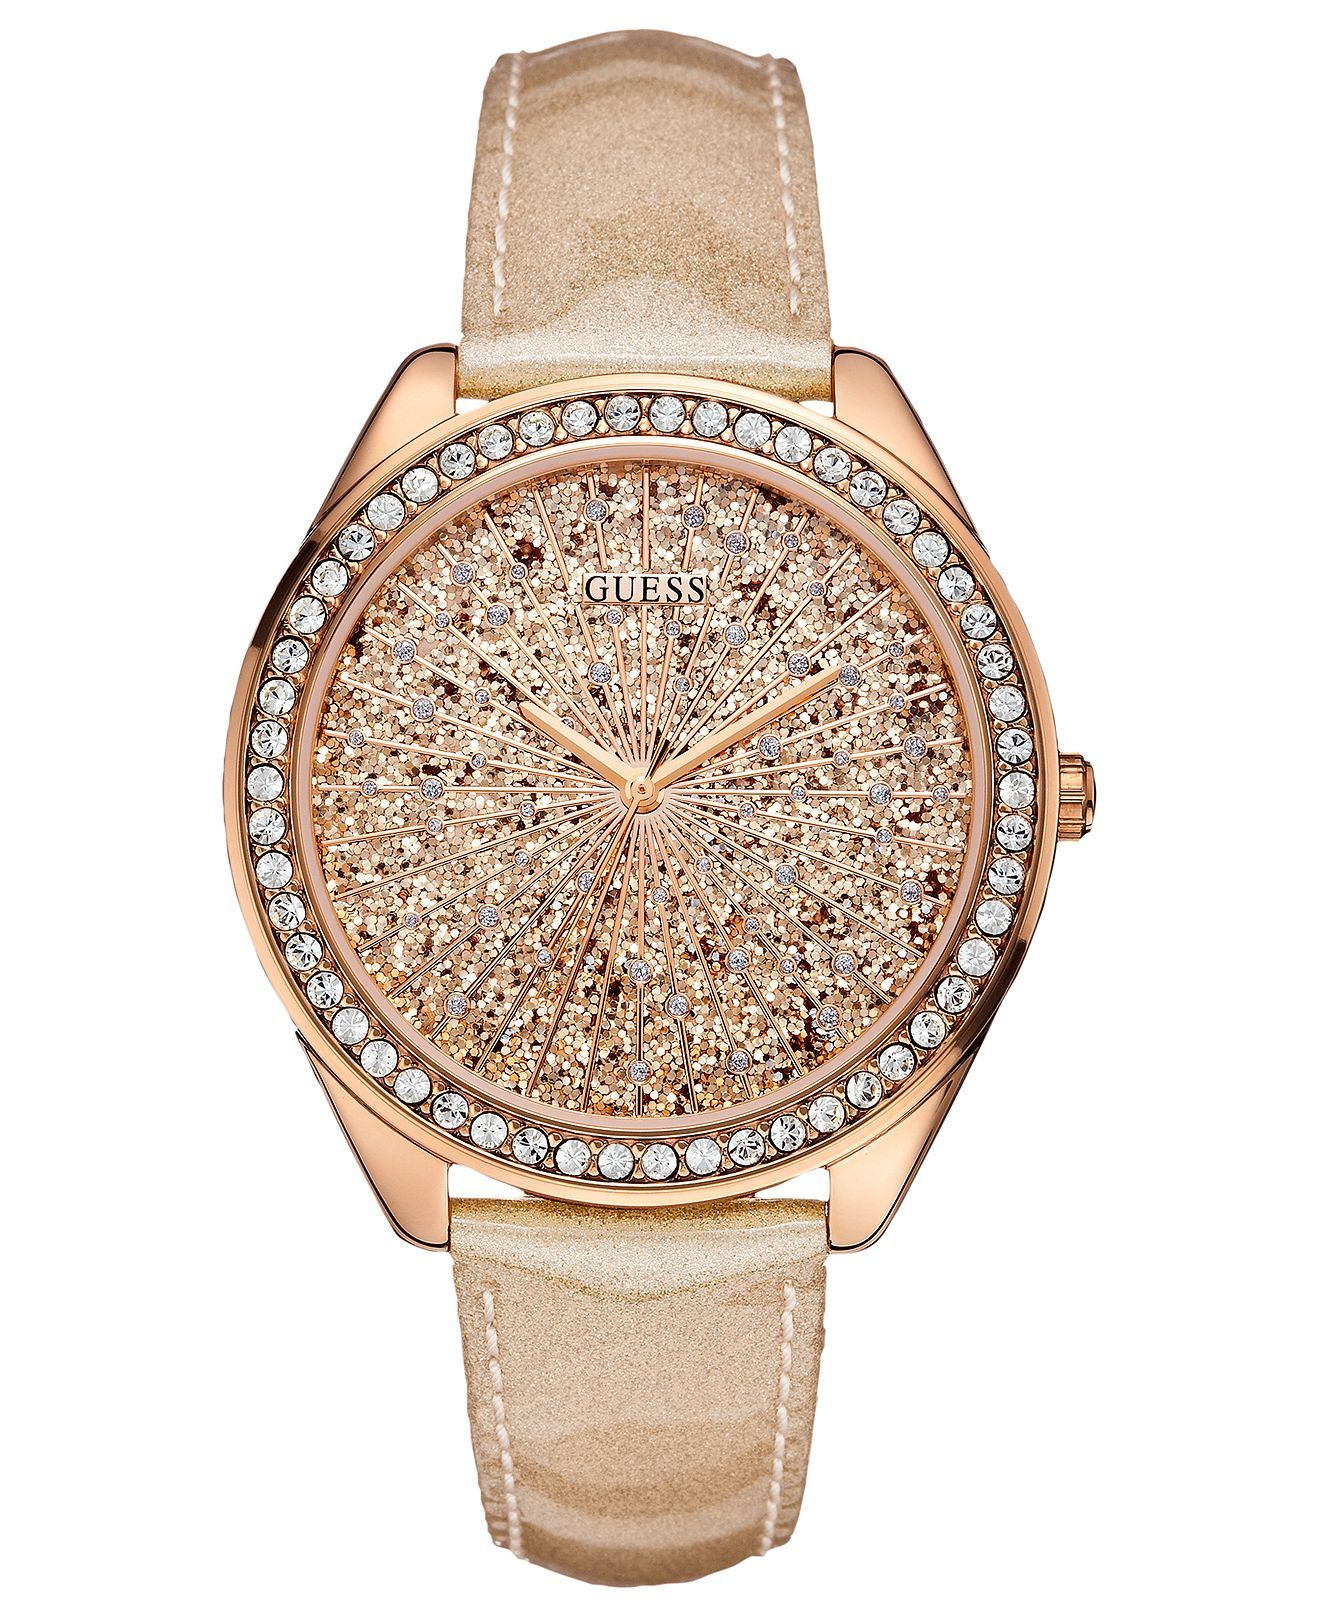 GUESS Watch, Womens Peach Glitter Patent Leather Strap ...